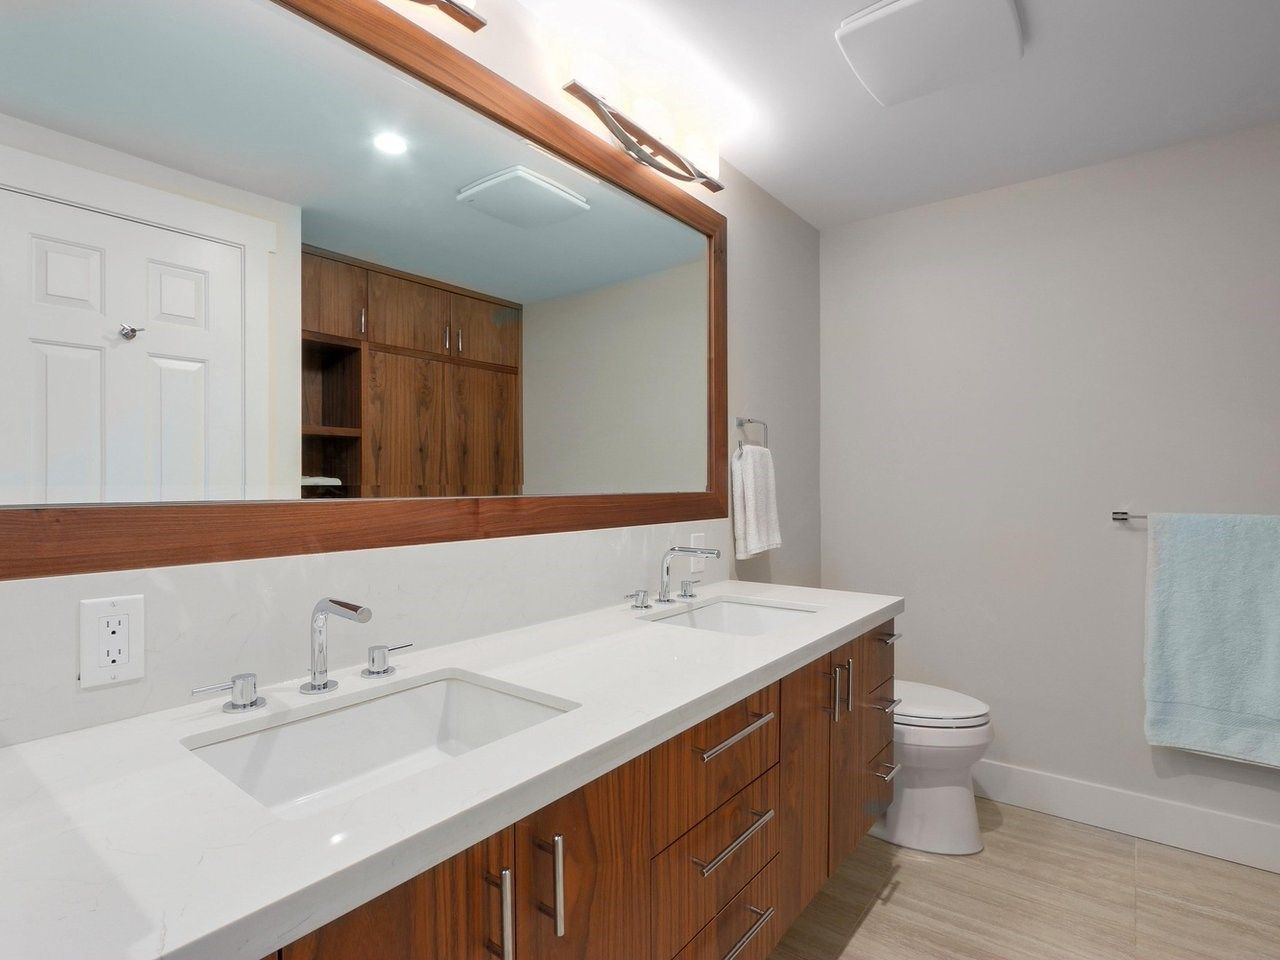 """Photo 13: Photos: 5916 NANCY GREENE Way in North Vancouver: Grouse Woods Townhouse for sale in """"Grousemont Estates"""" : MLS®# R2432954"""